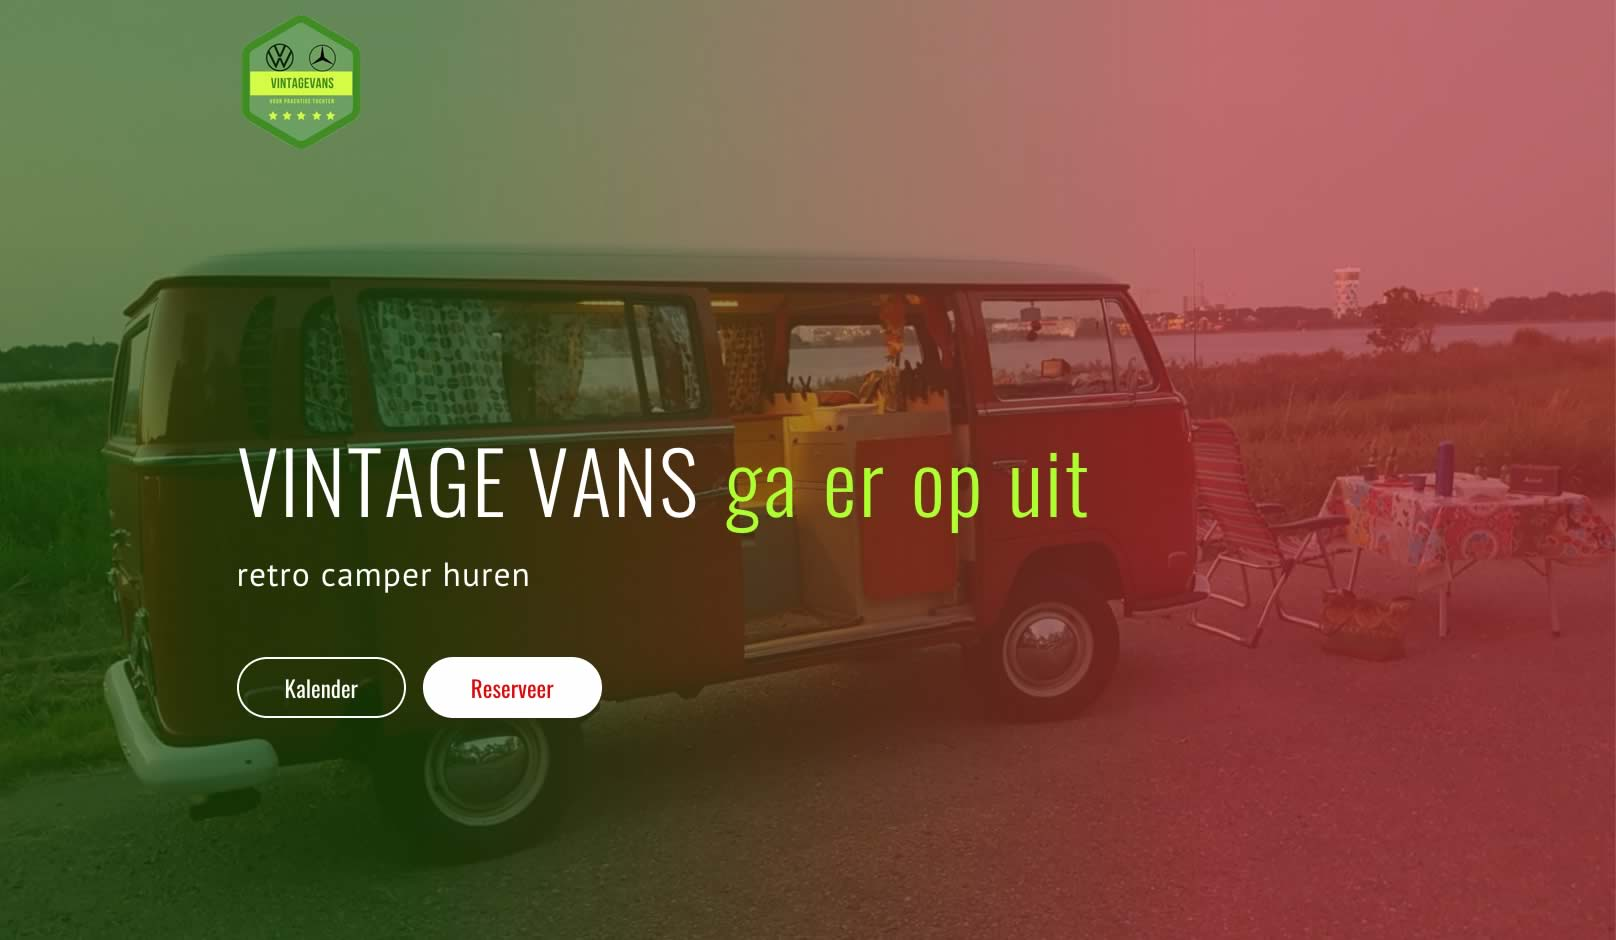 website retro camper huren